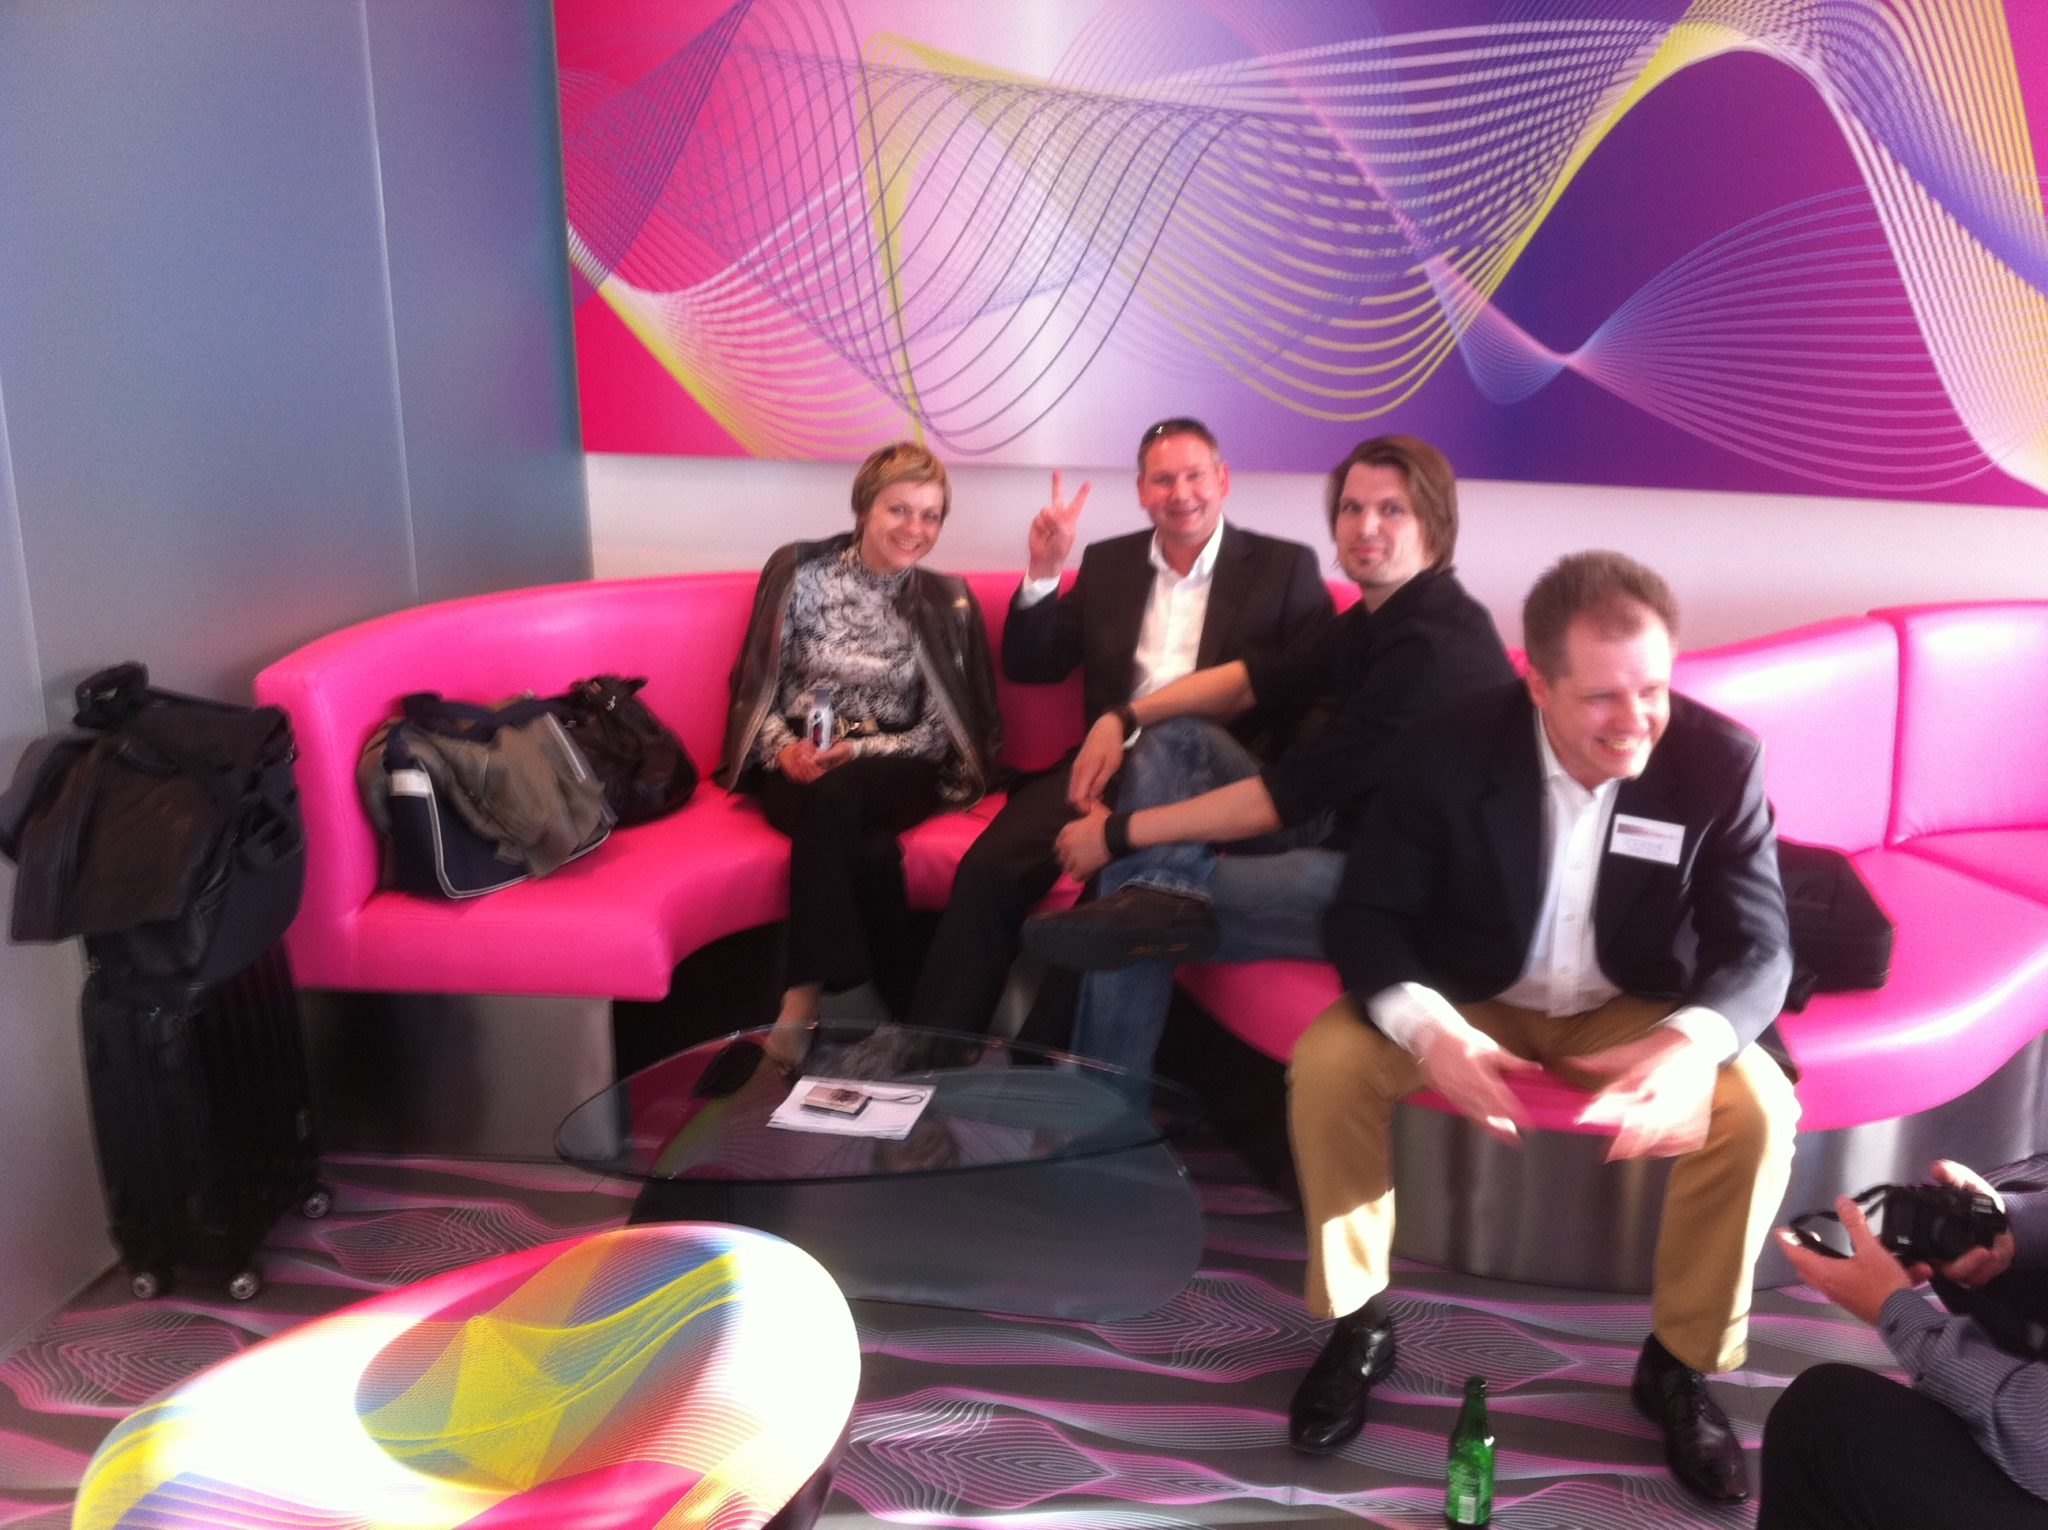 VIP-Lounge beim Internet Marketing Kongress 2011 in der Luxus-Suite des nHow-Hotels.